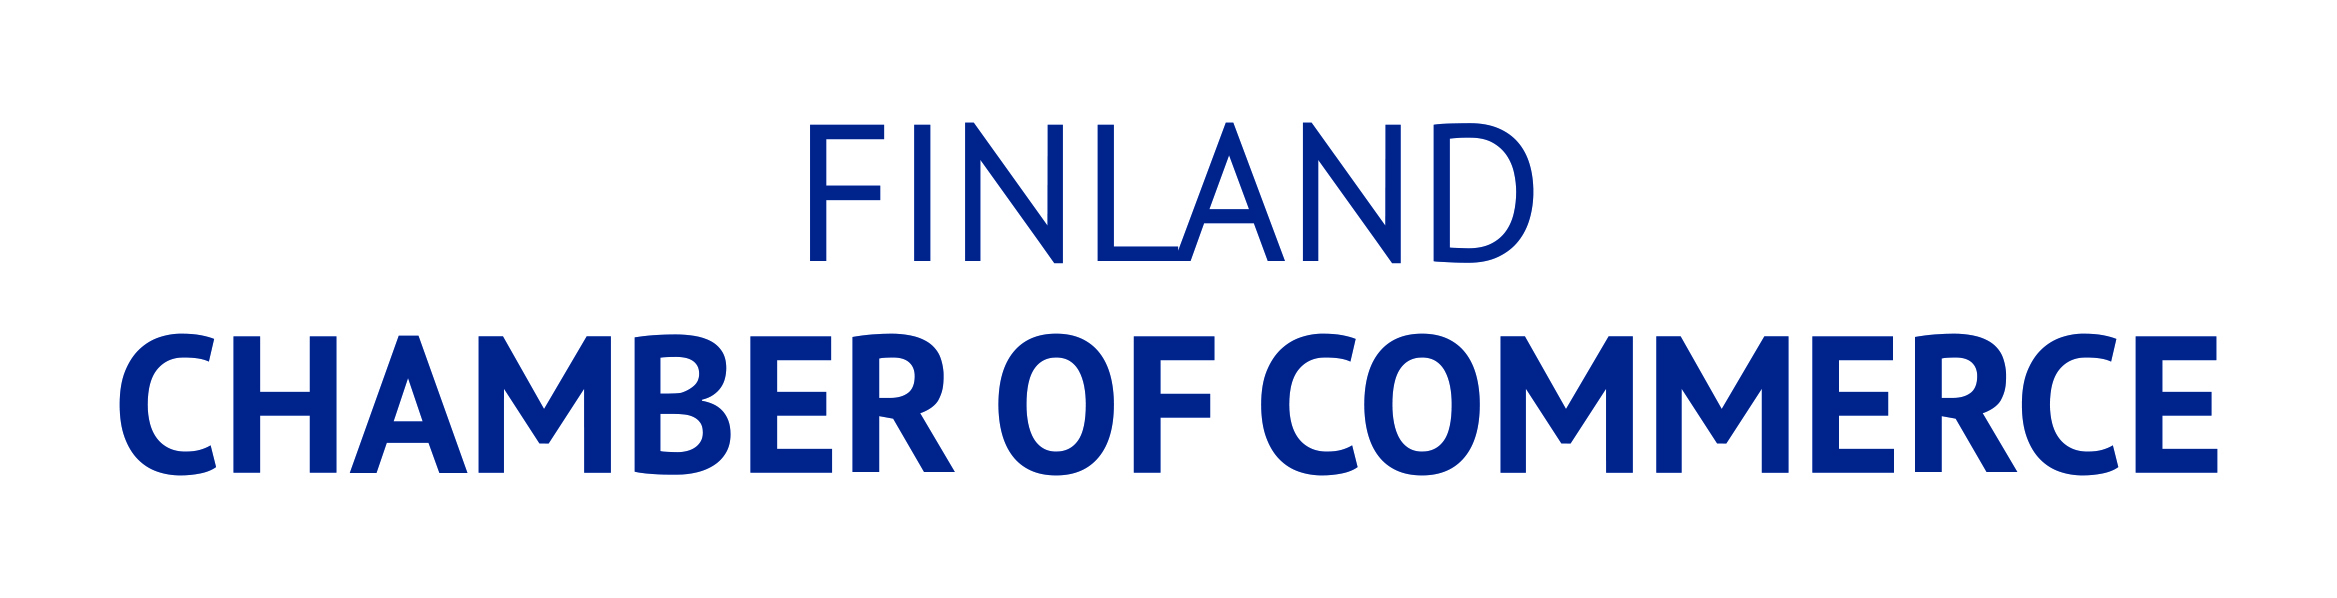 Finland Chamber of Commerce